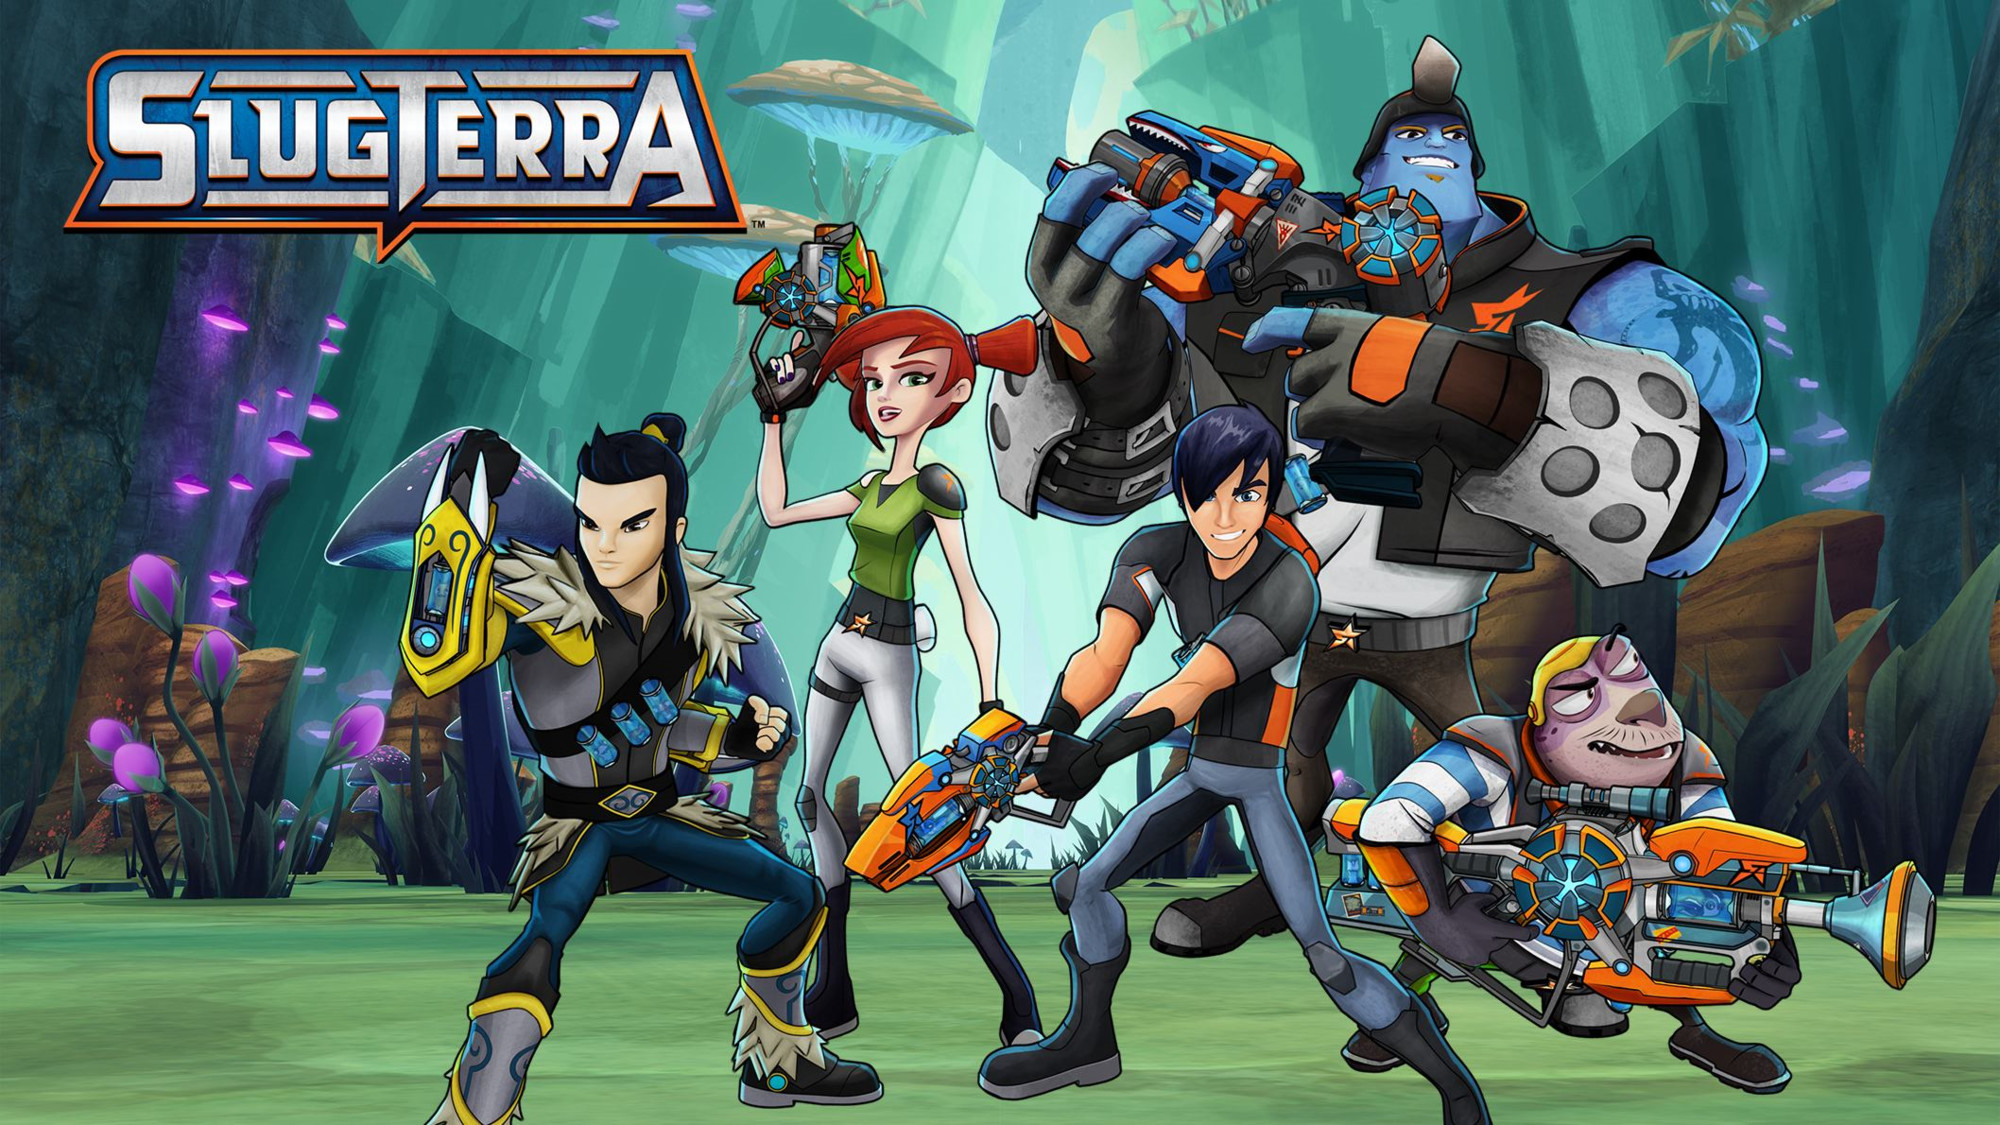 Porno Hd En La Cocina Slugterra Wallpapers 85 43 Images